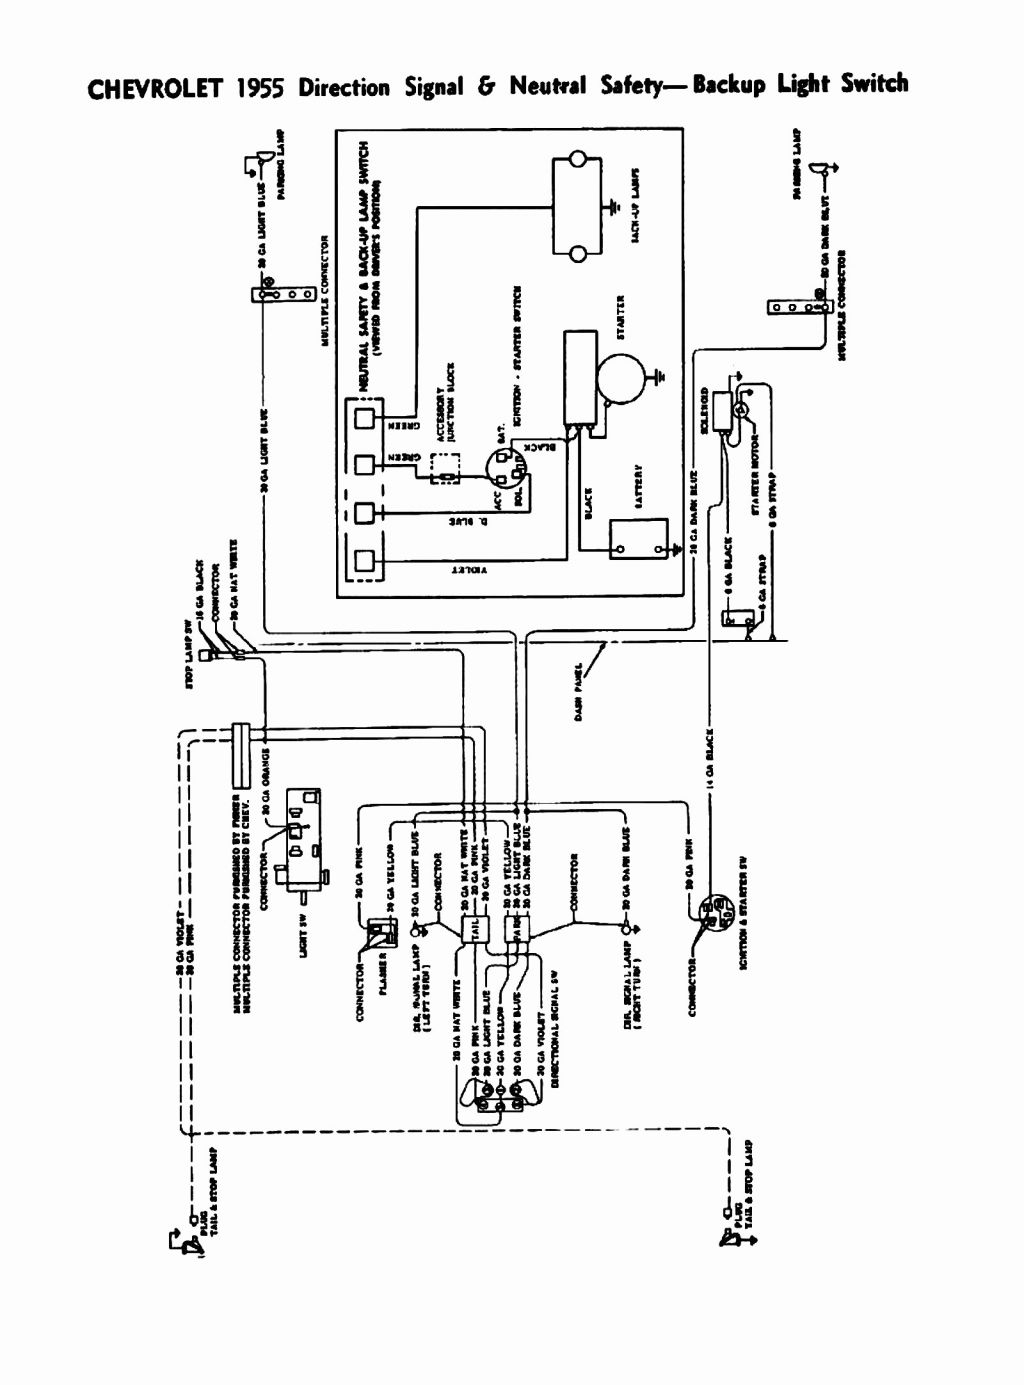 2004 gsxr 600 headlight wiring diagram honeywell rth8580wf lan auto electrical related with